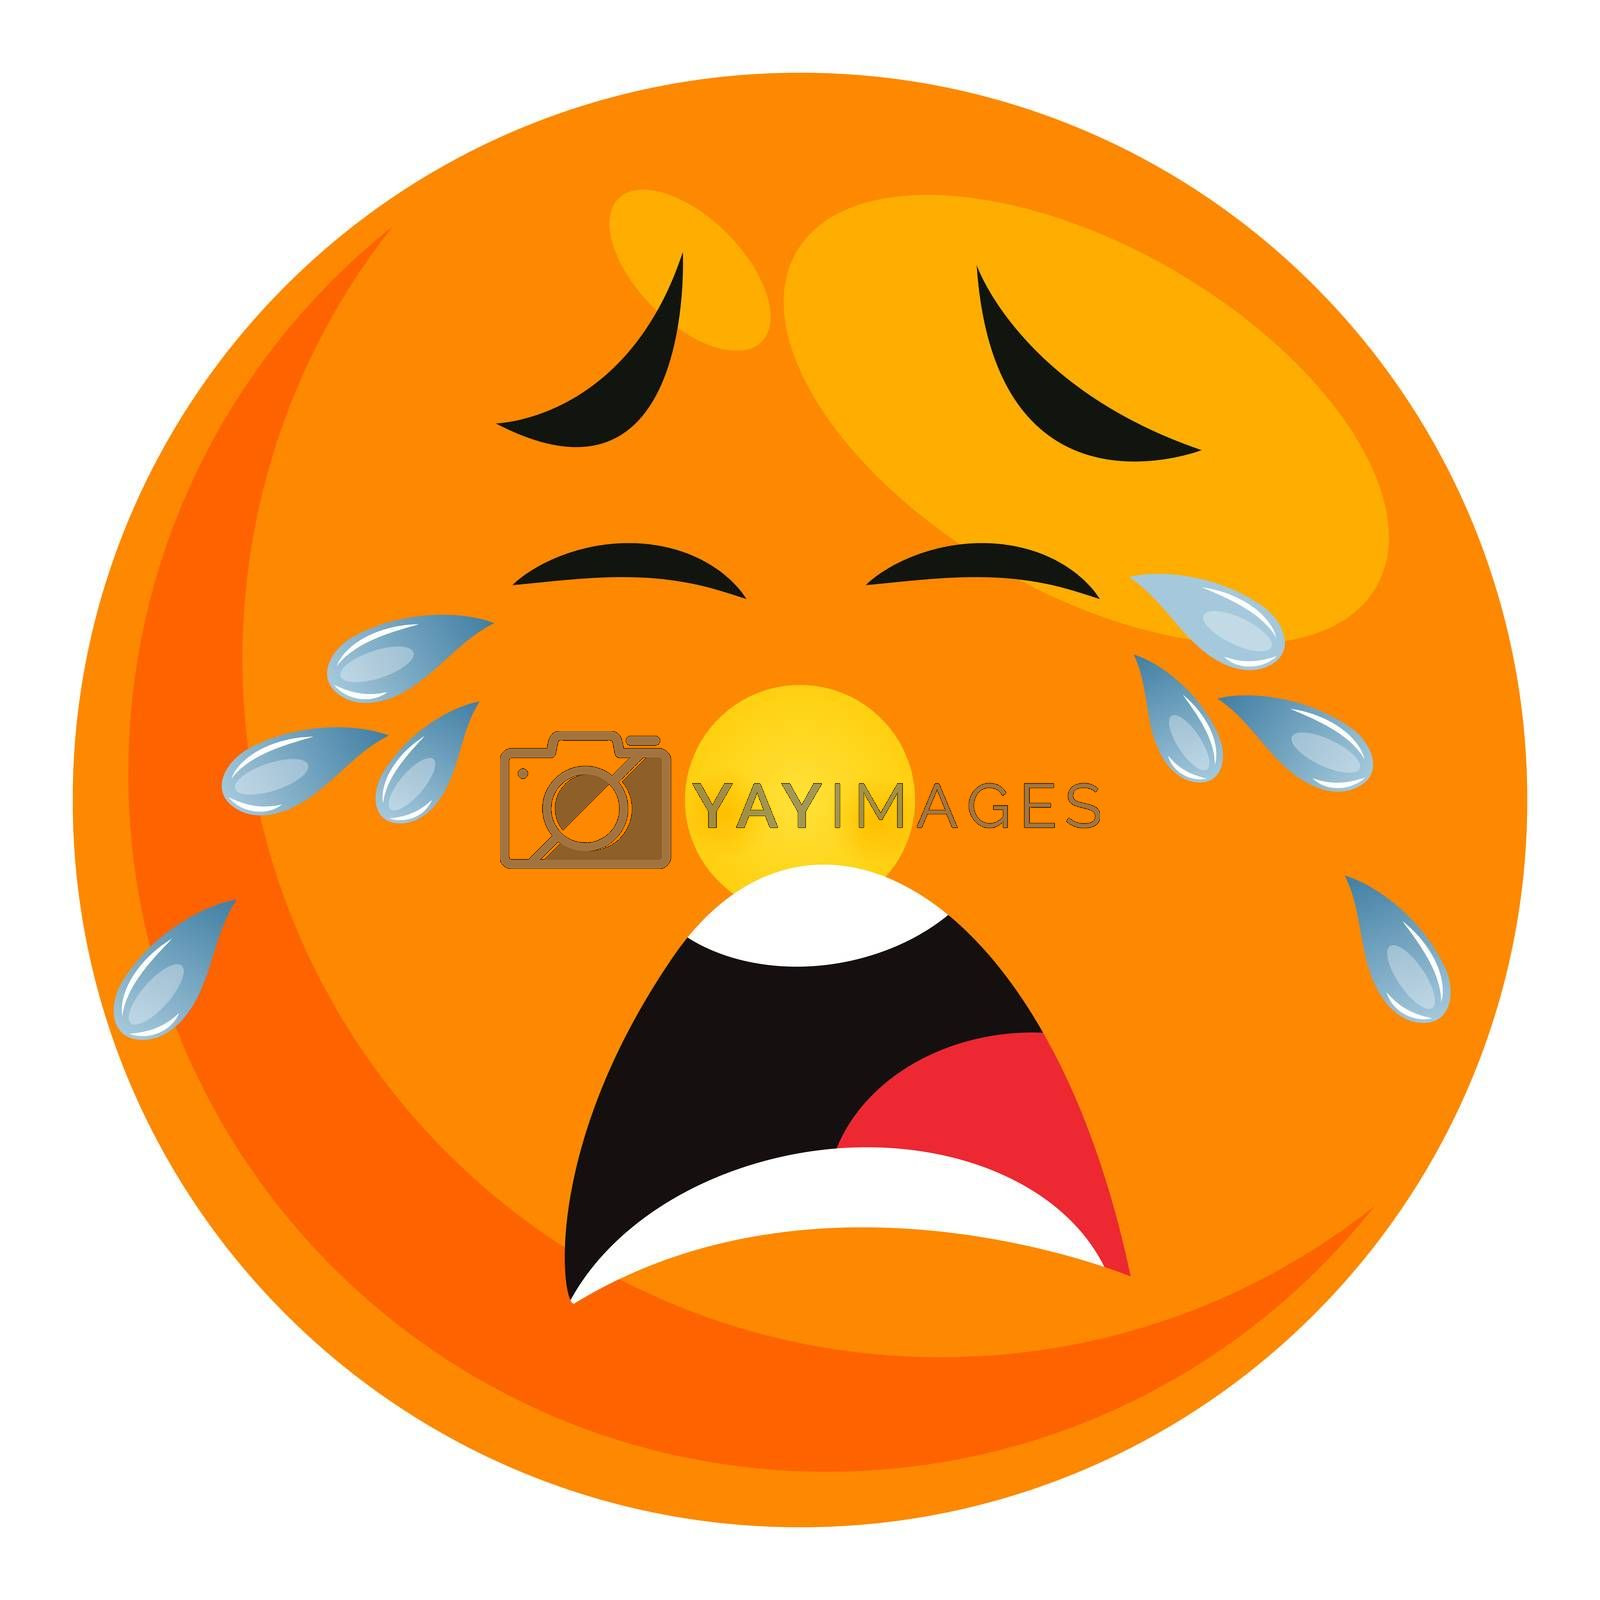 Royalty free image of Crying tears smiley, illustration, vector on white background by Morphart